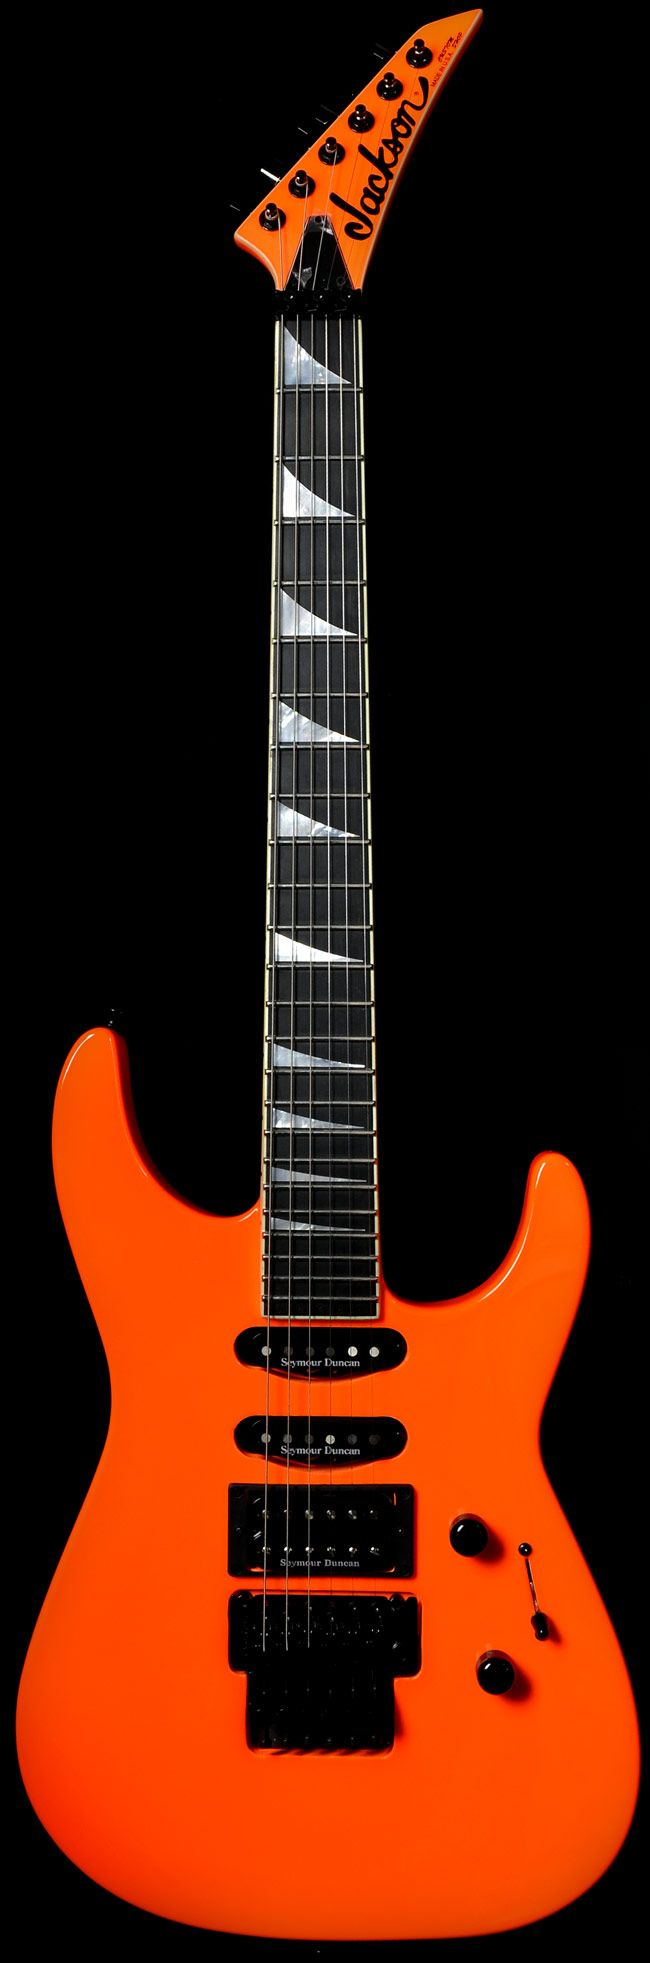 Wild West Guitars : Jackson USA Custom Shop Select SL1 Soloist Neon Orange